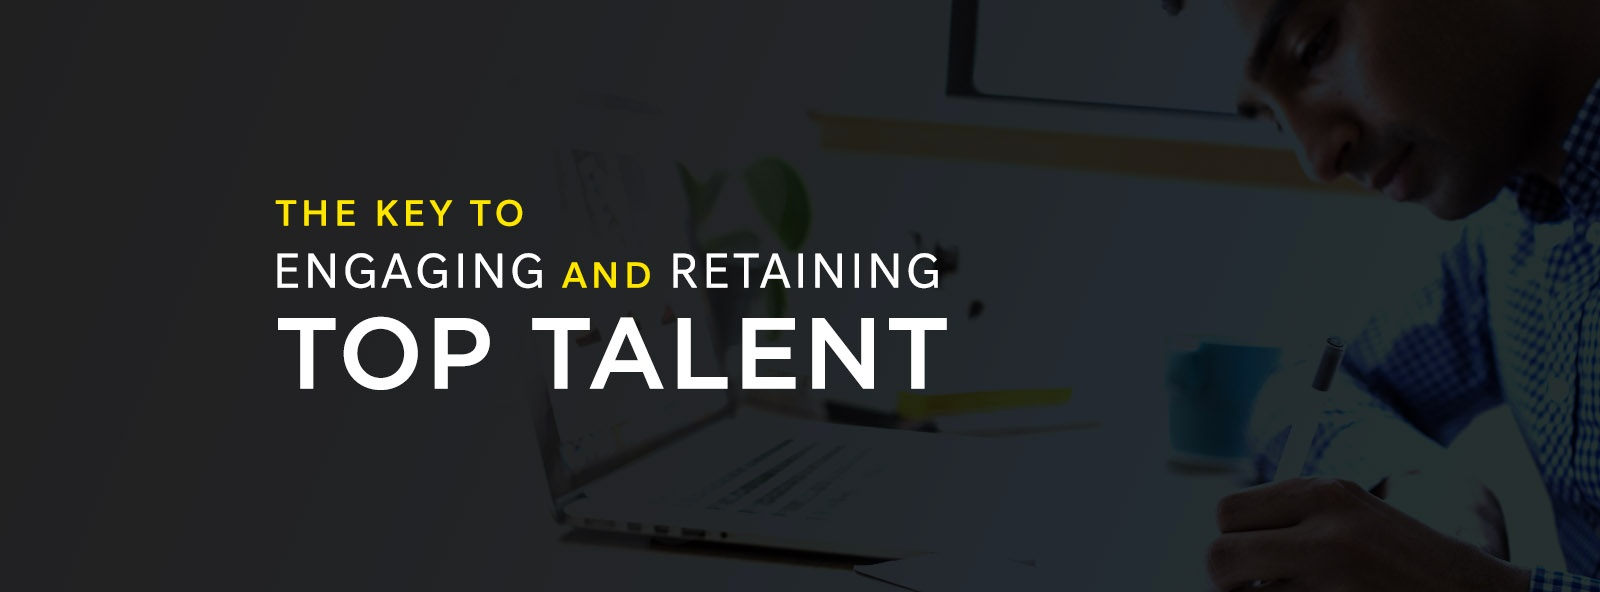 The Key to Engaging and Retaining Top Talent2